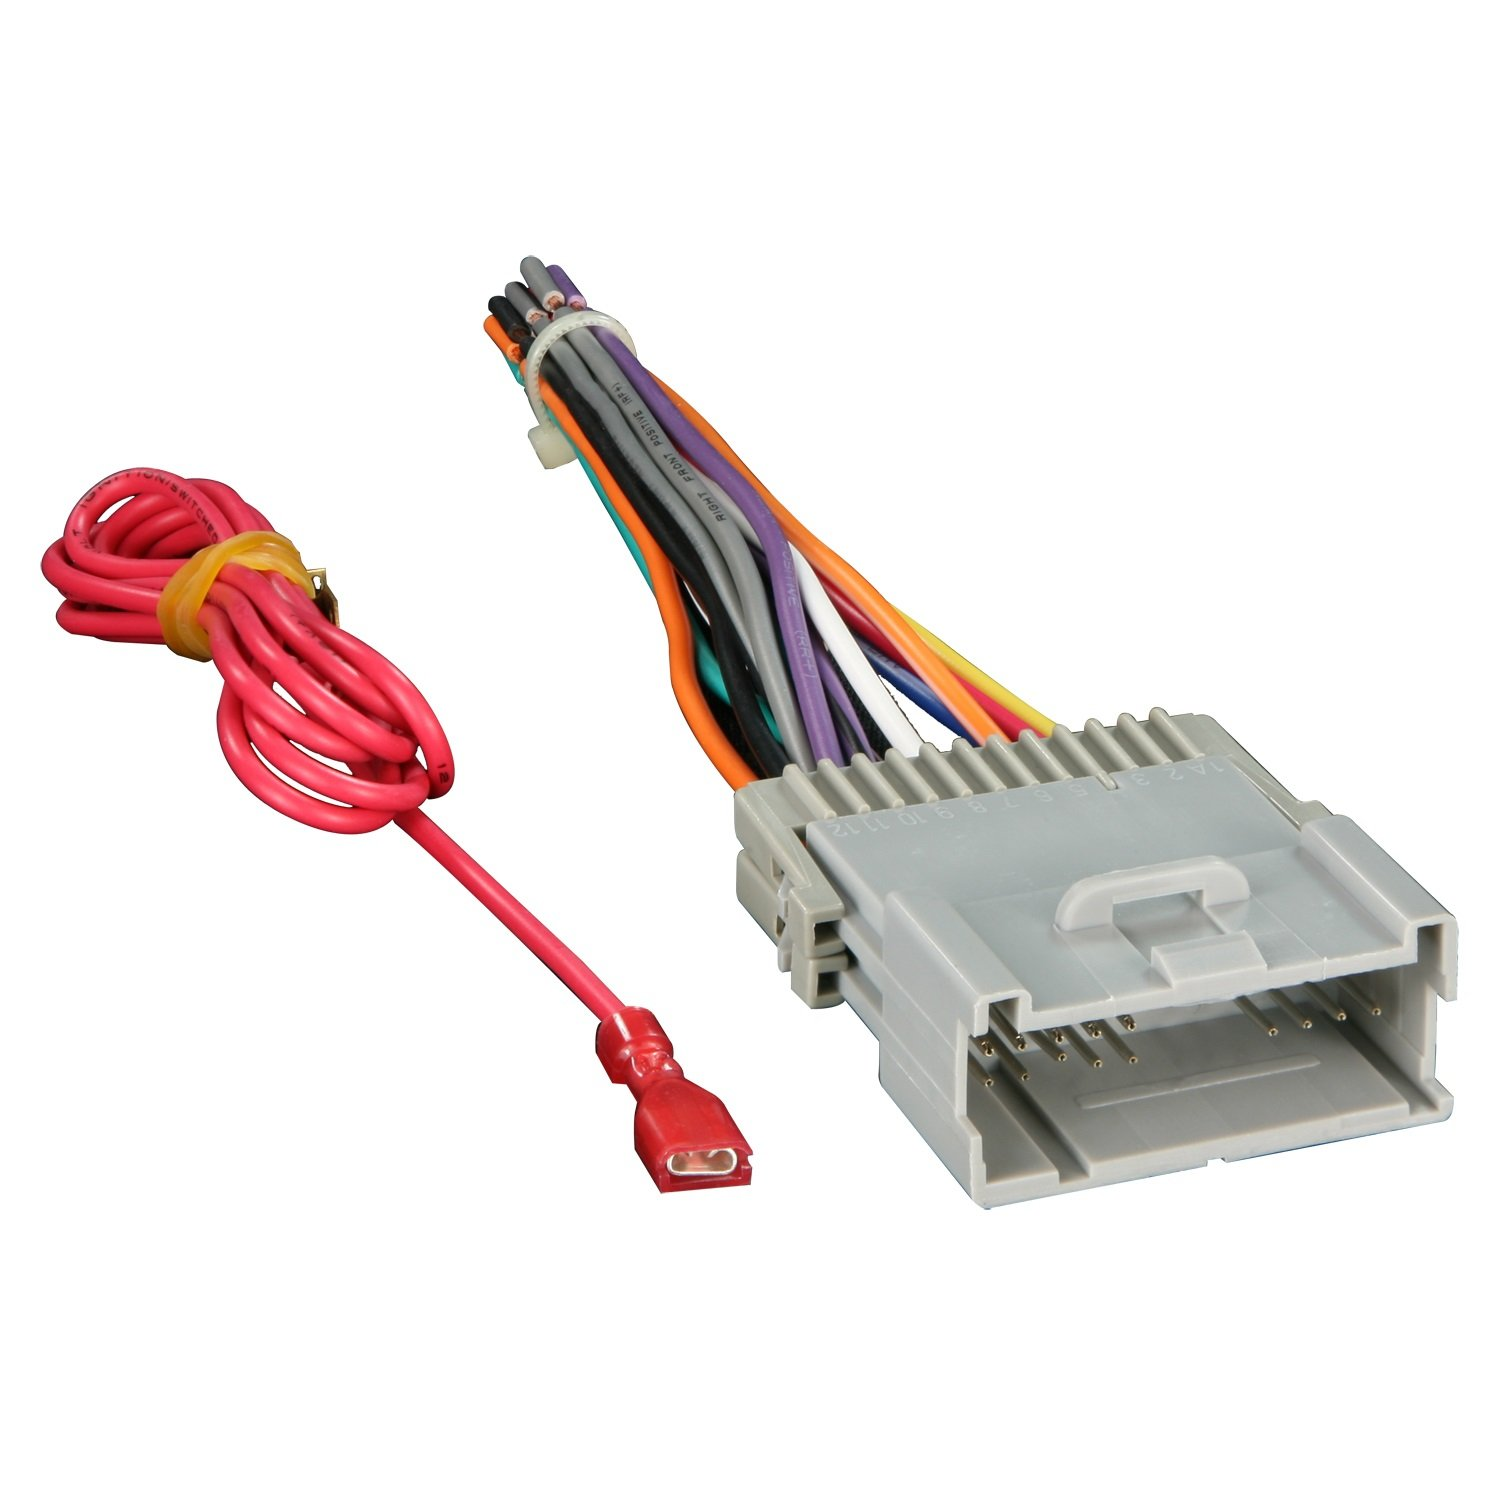 61eewxp9orL._SL1500_ amazon com metra 70 2003 radio wiring harness for gm 98 08 do i need a wiring harness at n-0.co